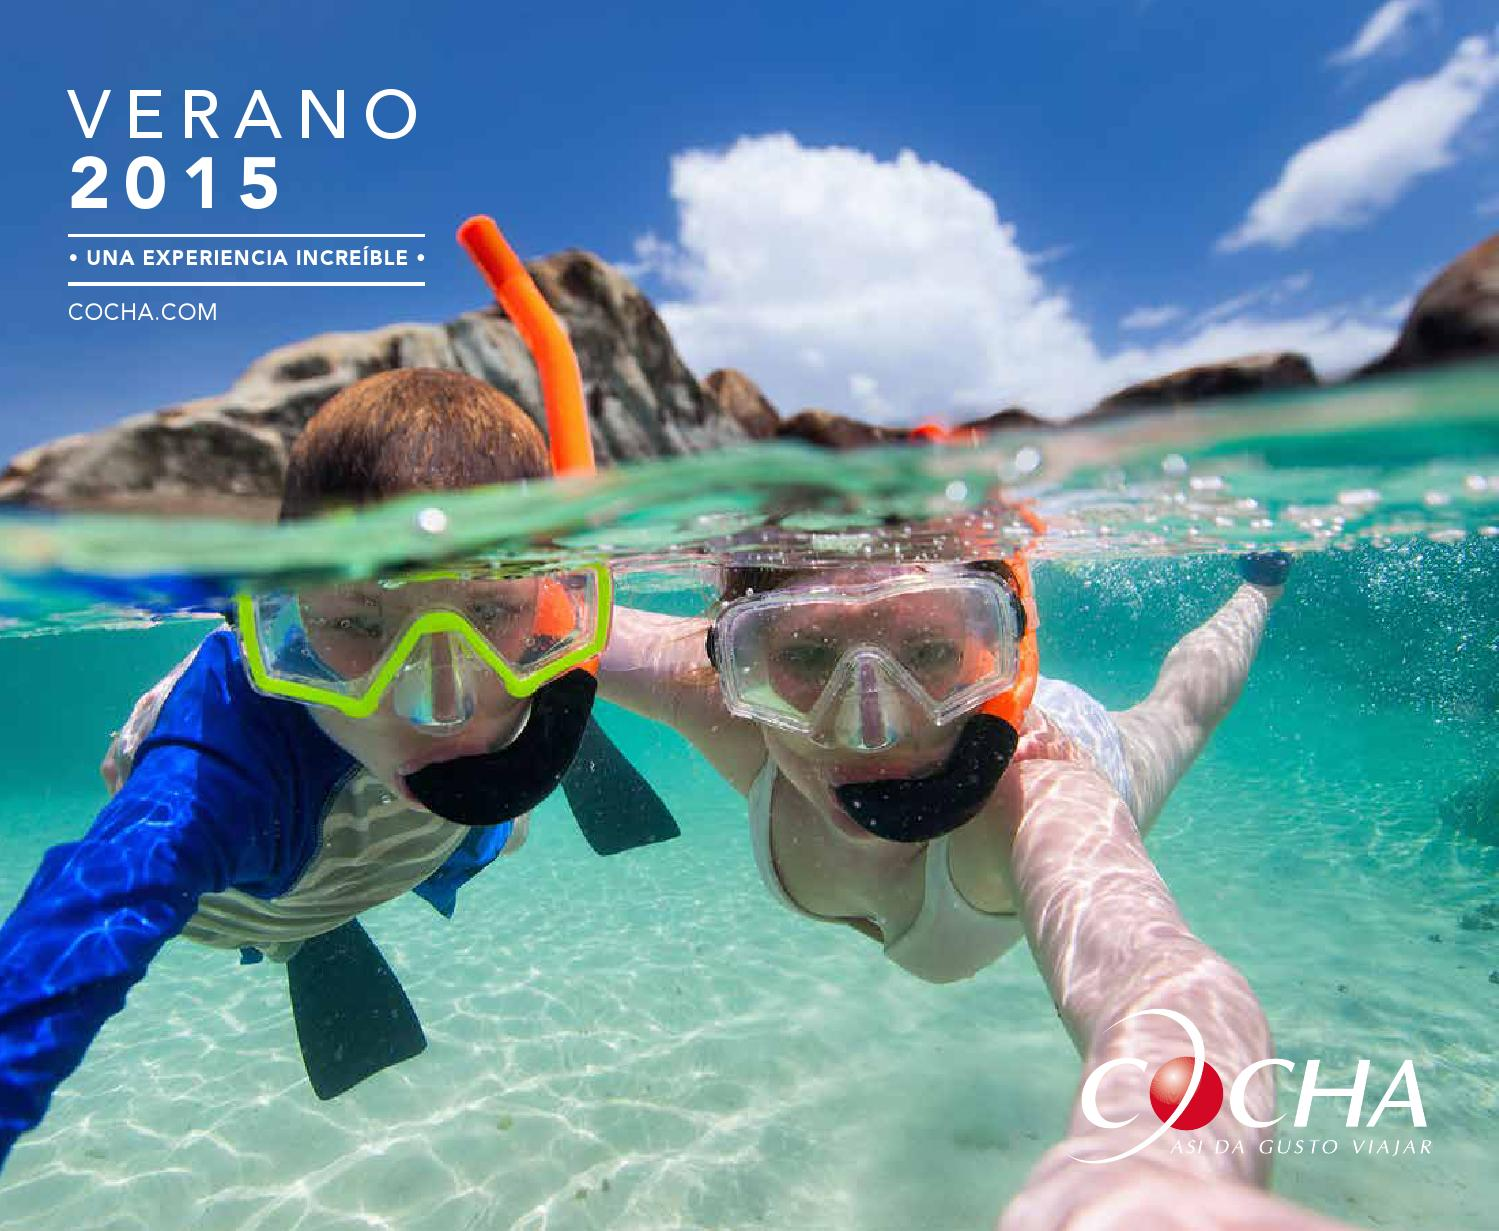 Verano 2015 Cocha By Cocha Agencia De Viajes Travel Agency Issuu